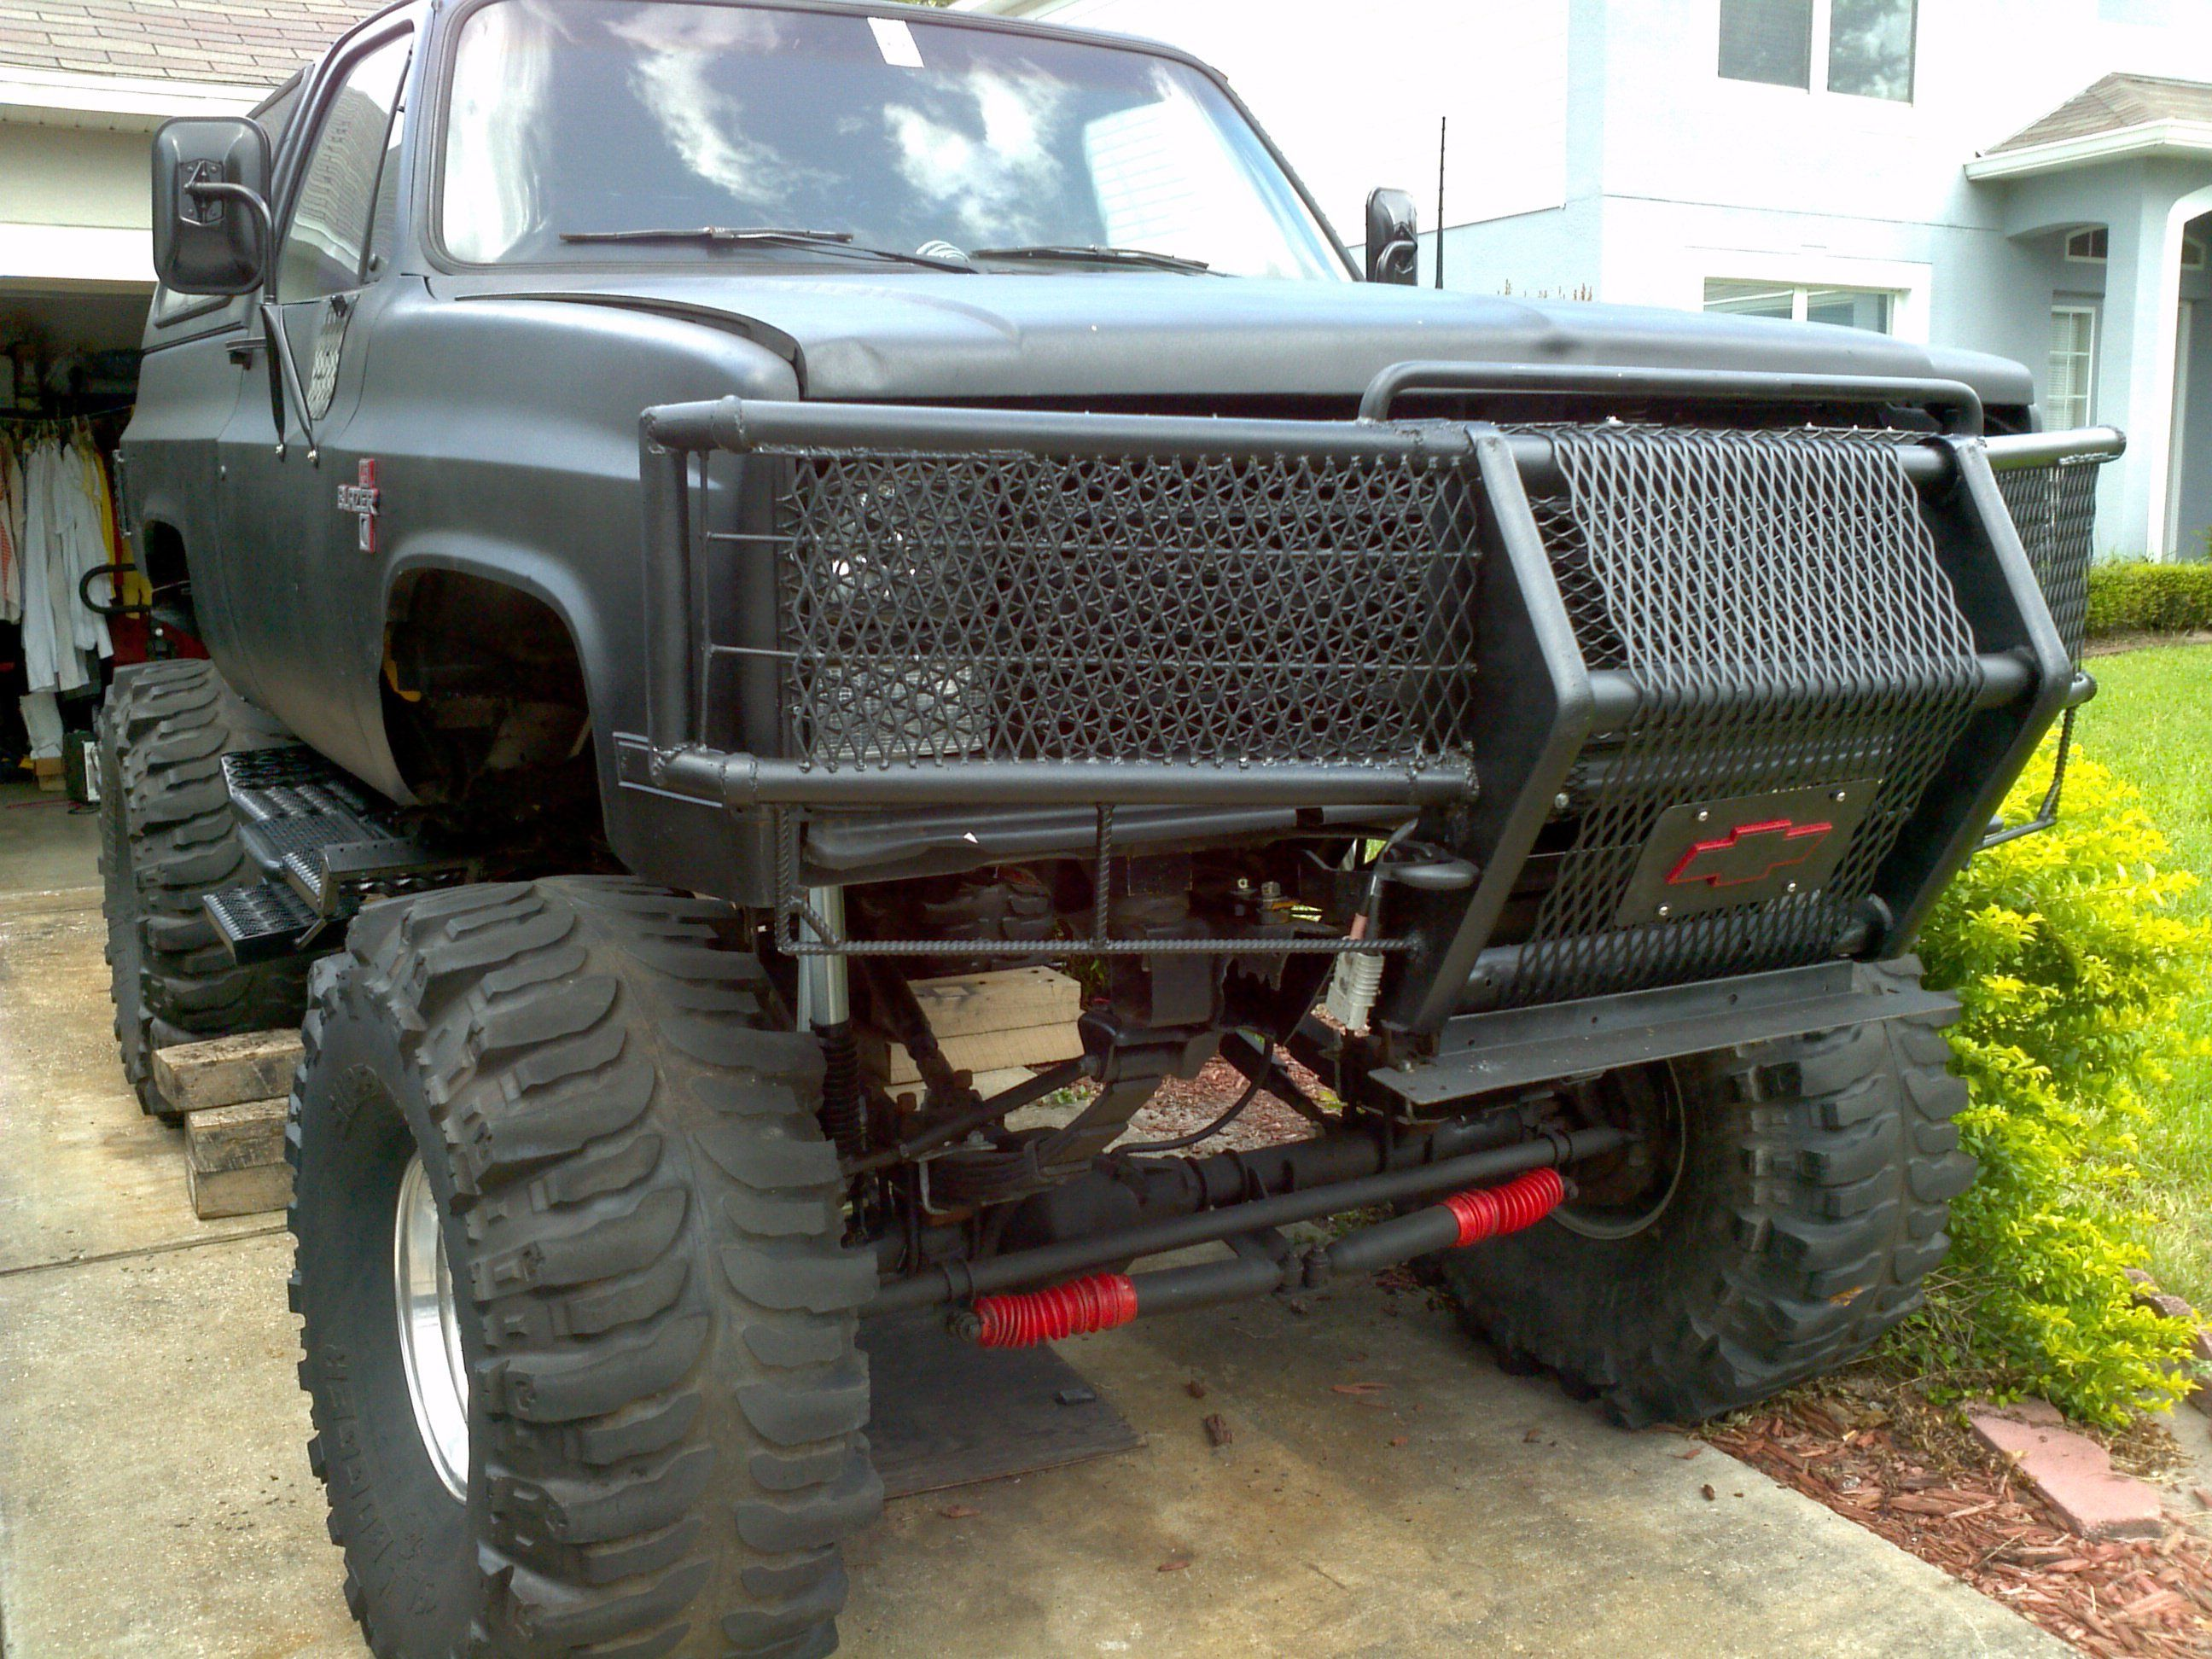 1987 K5 Blazer 3 4 Ton Axles And 44 Boggers Lifted Chevy K5 Blazer Lifted Chevy Trucks